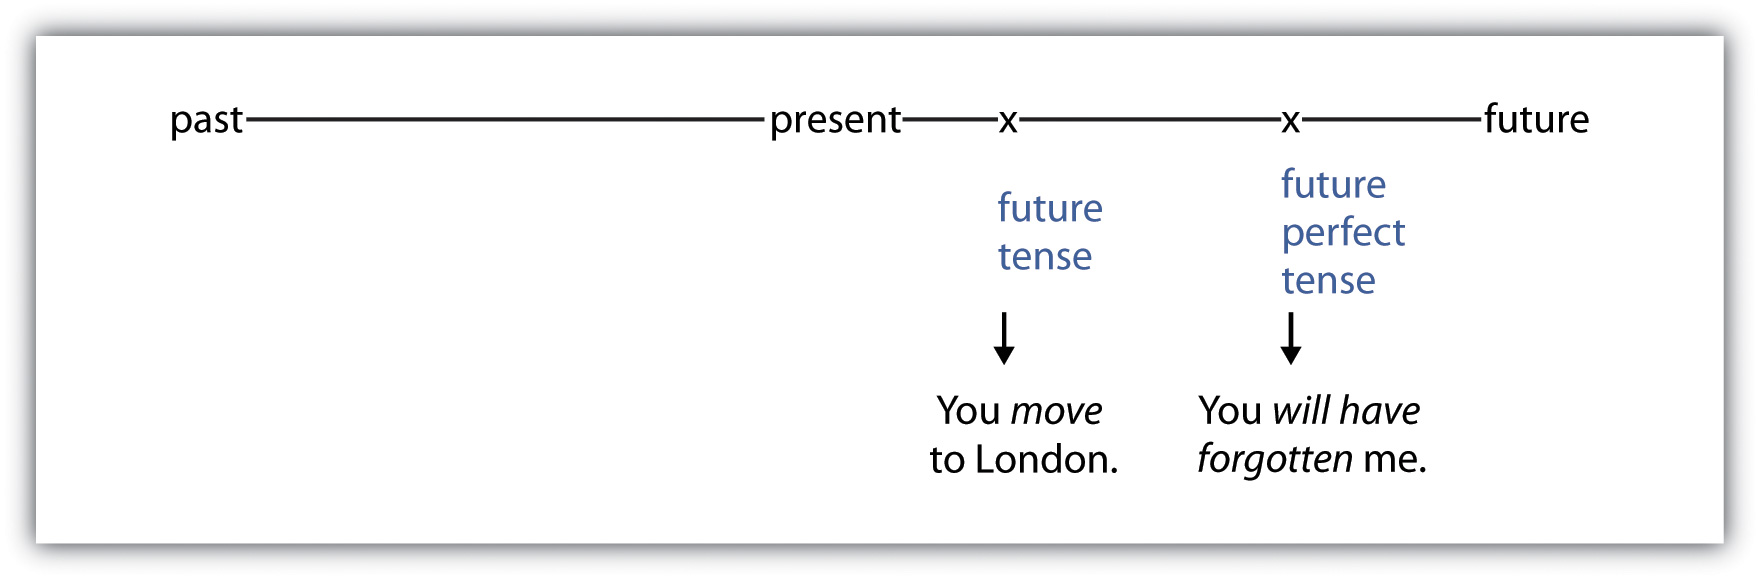 verb tenses the future perfect tense describes an action from the past in the future as if the past event has already occurred use the future perfect tense when you